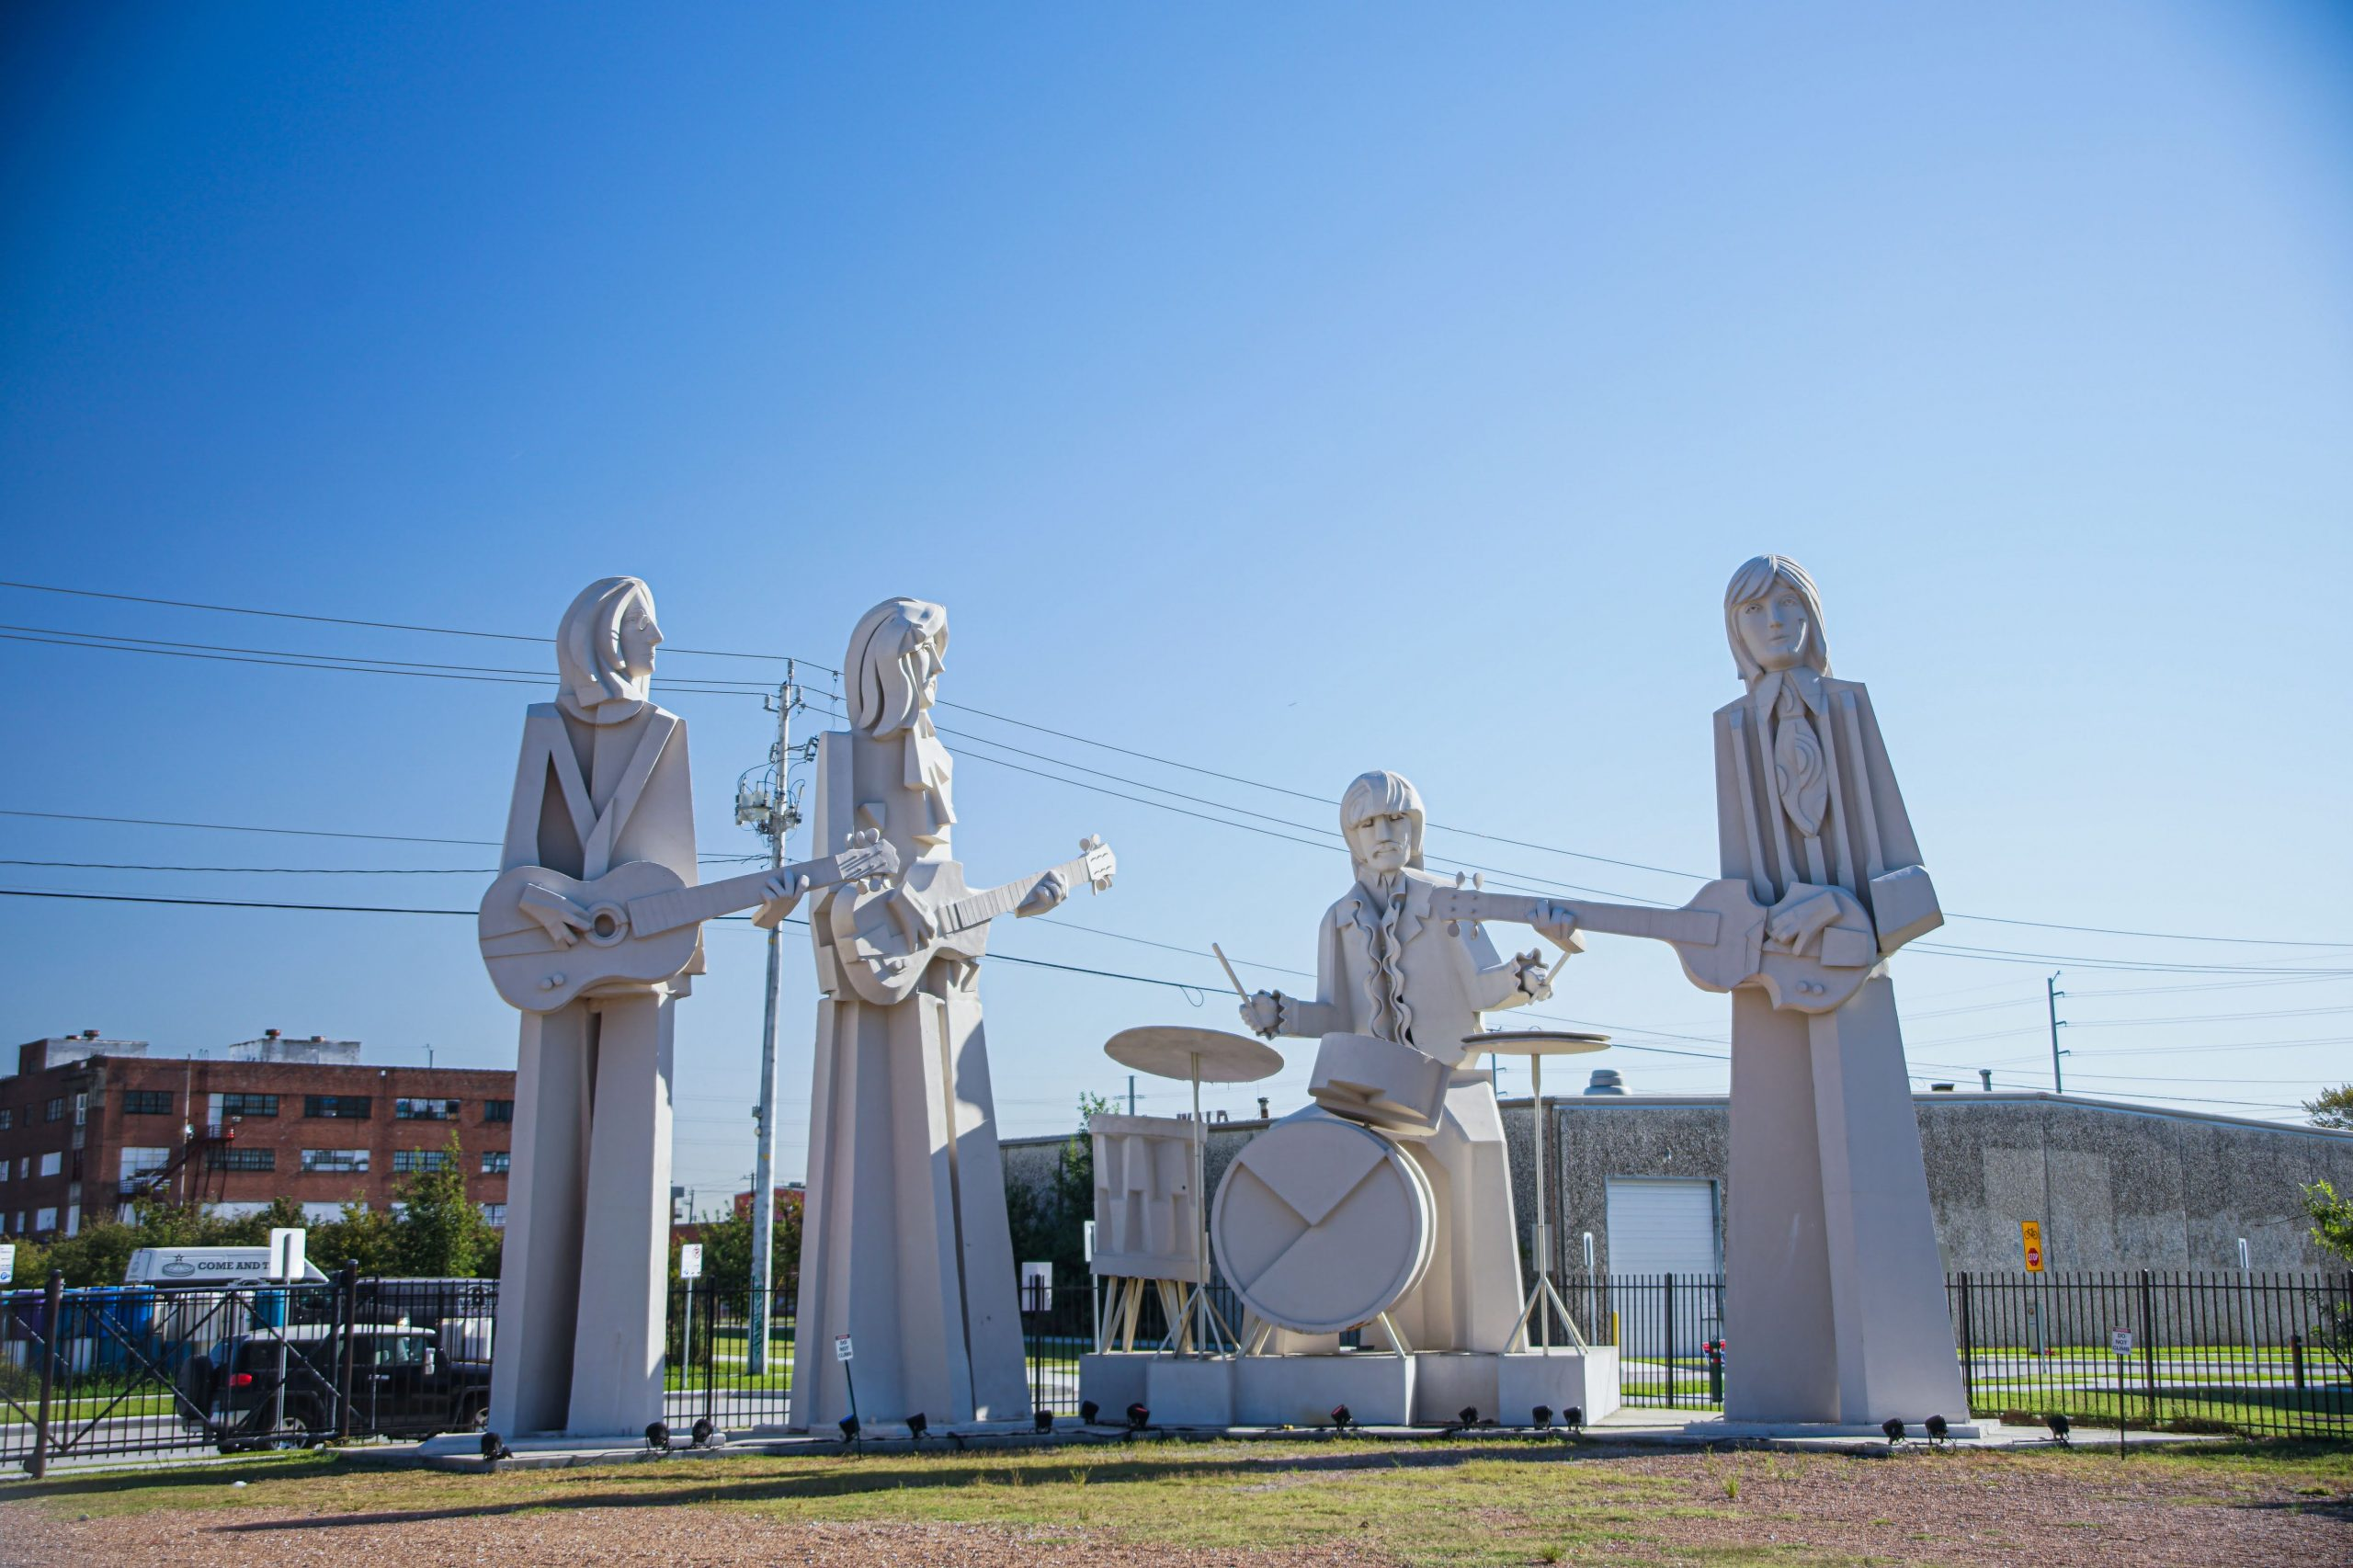 Giant Beatles statues on the grounds of 8th Wonder Brewery